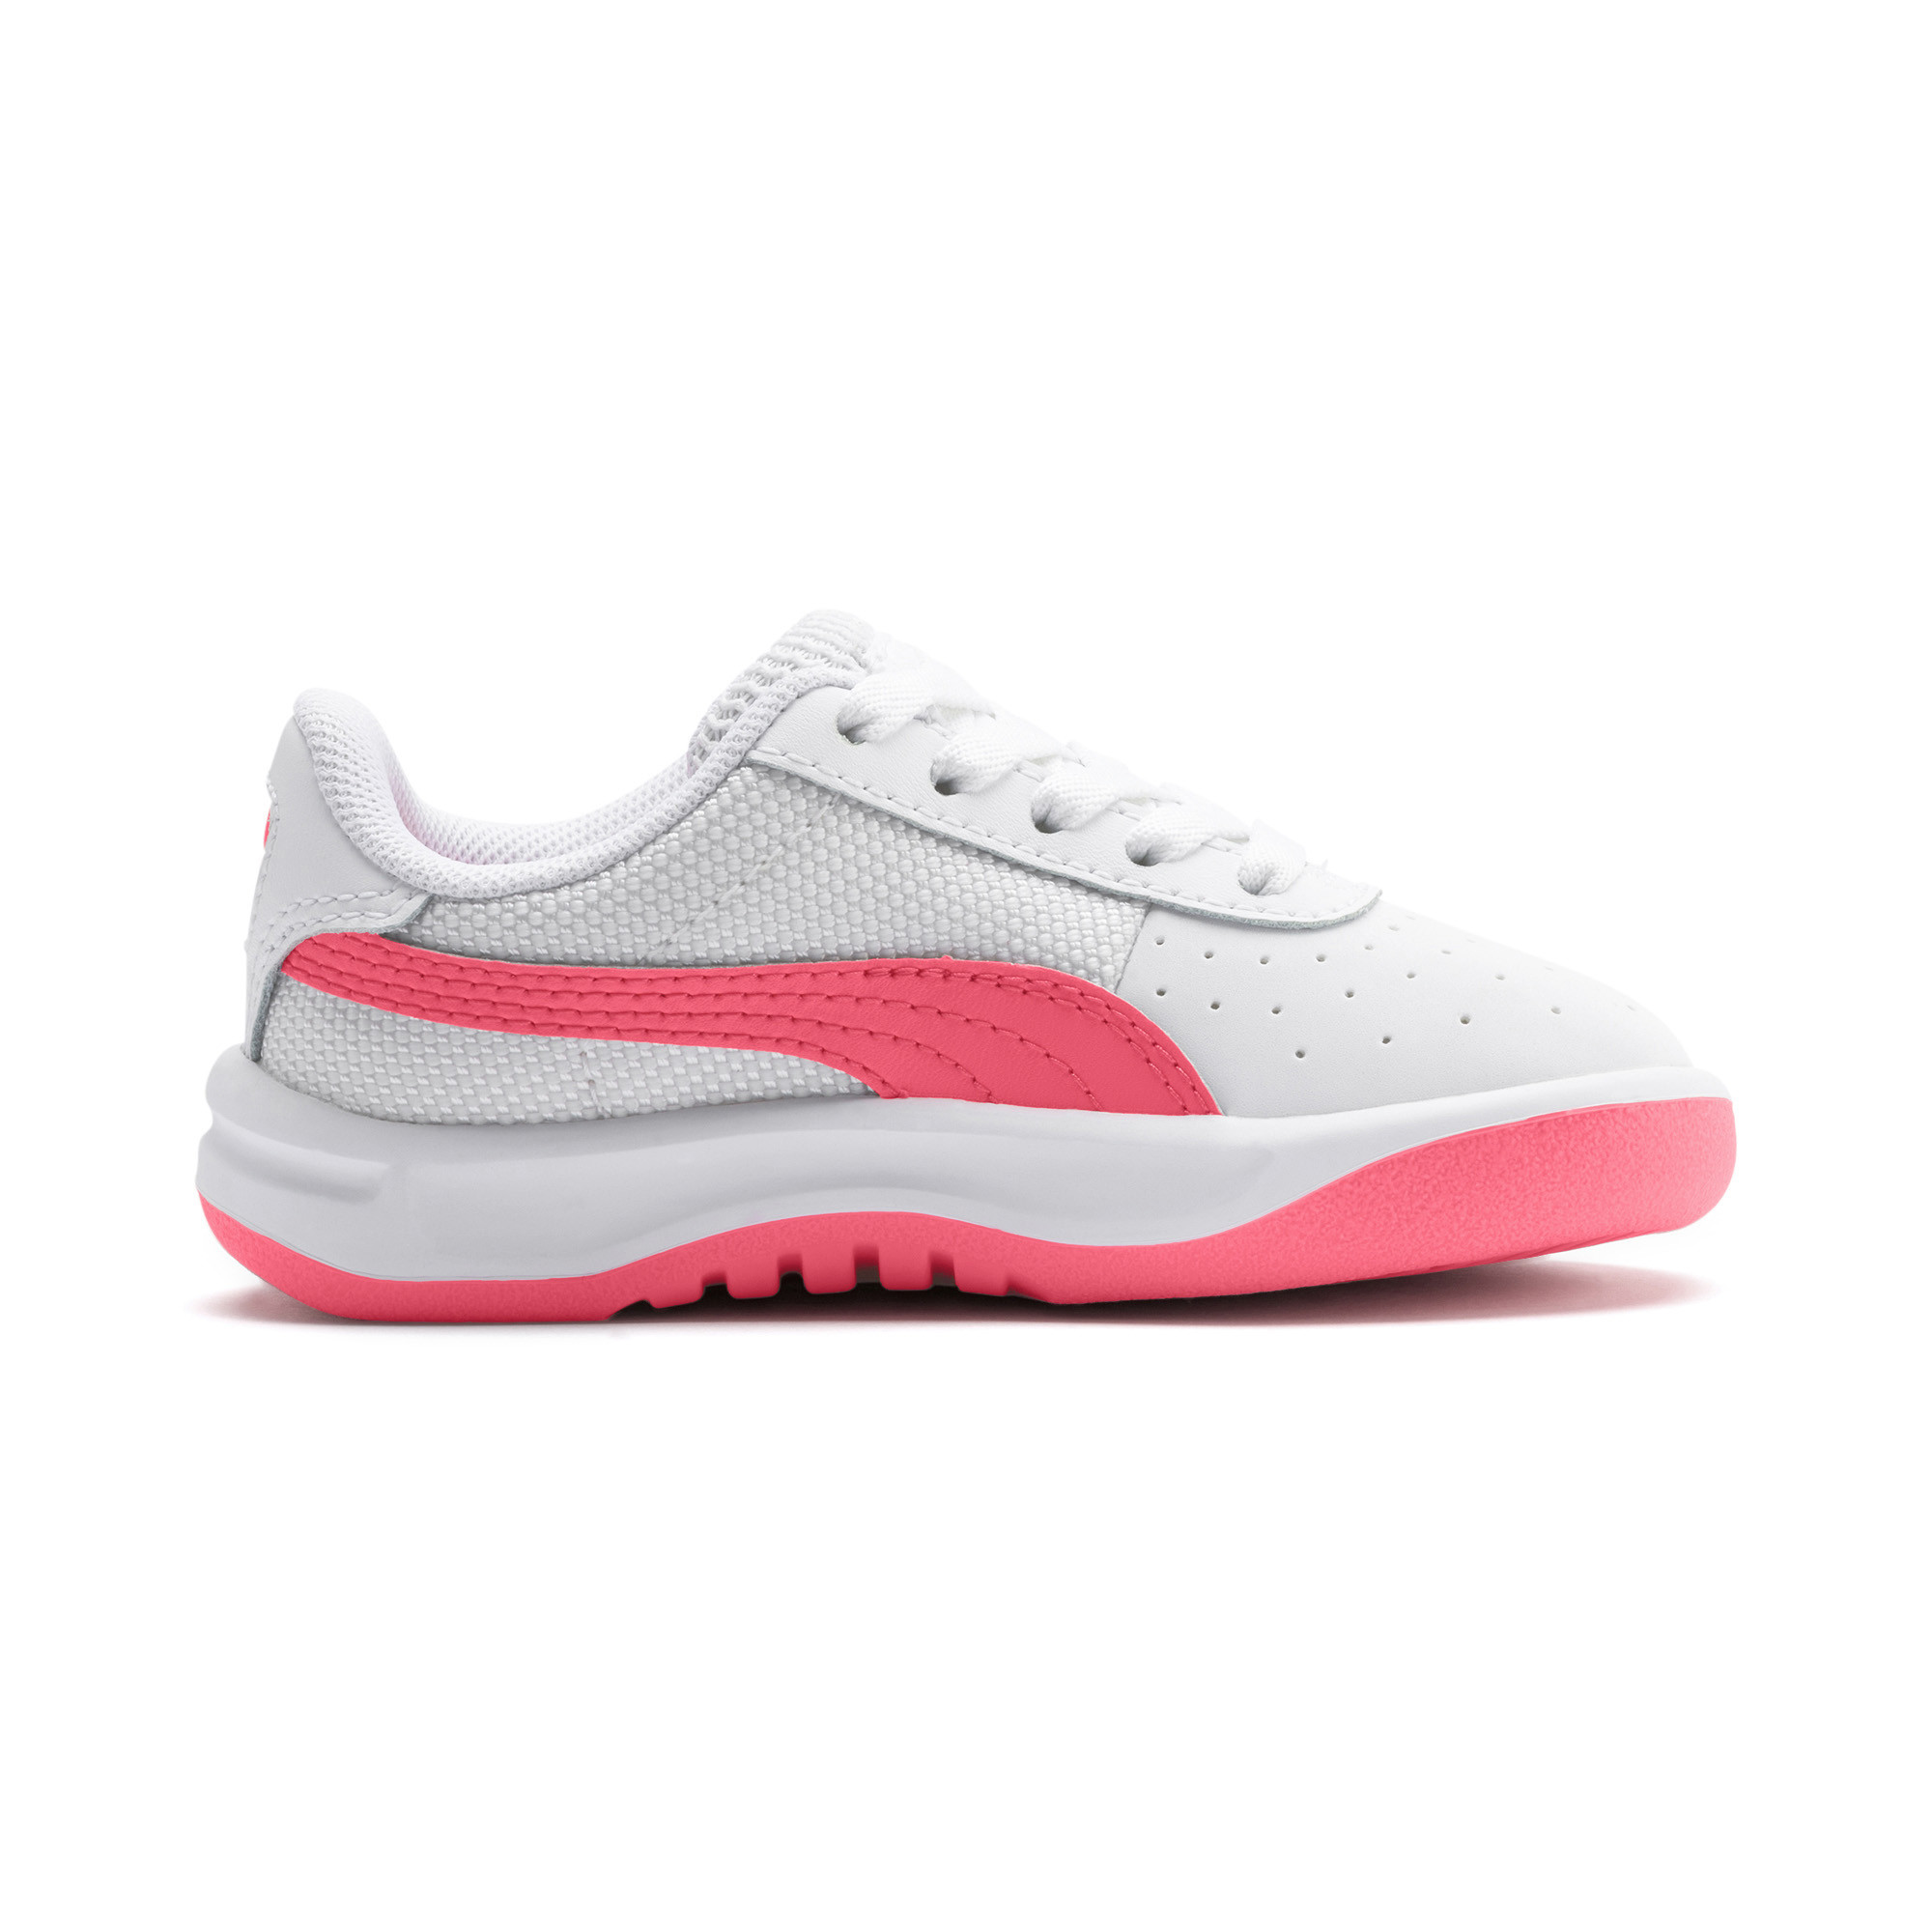 PUMA-California-Toddler-Shoes-Kids-Shoe-Kids thumbnail 12